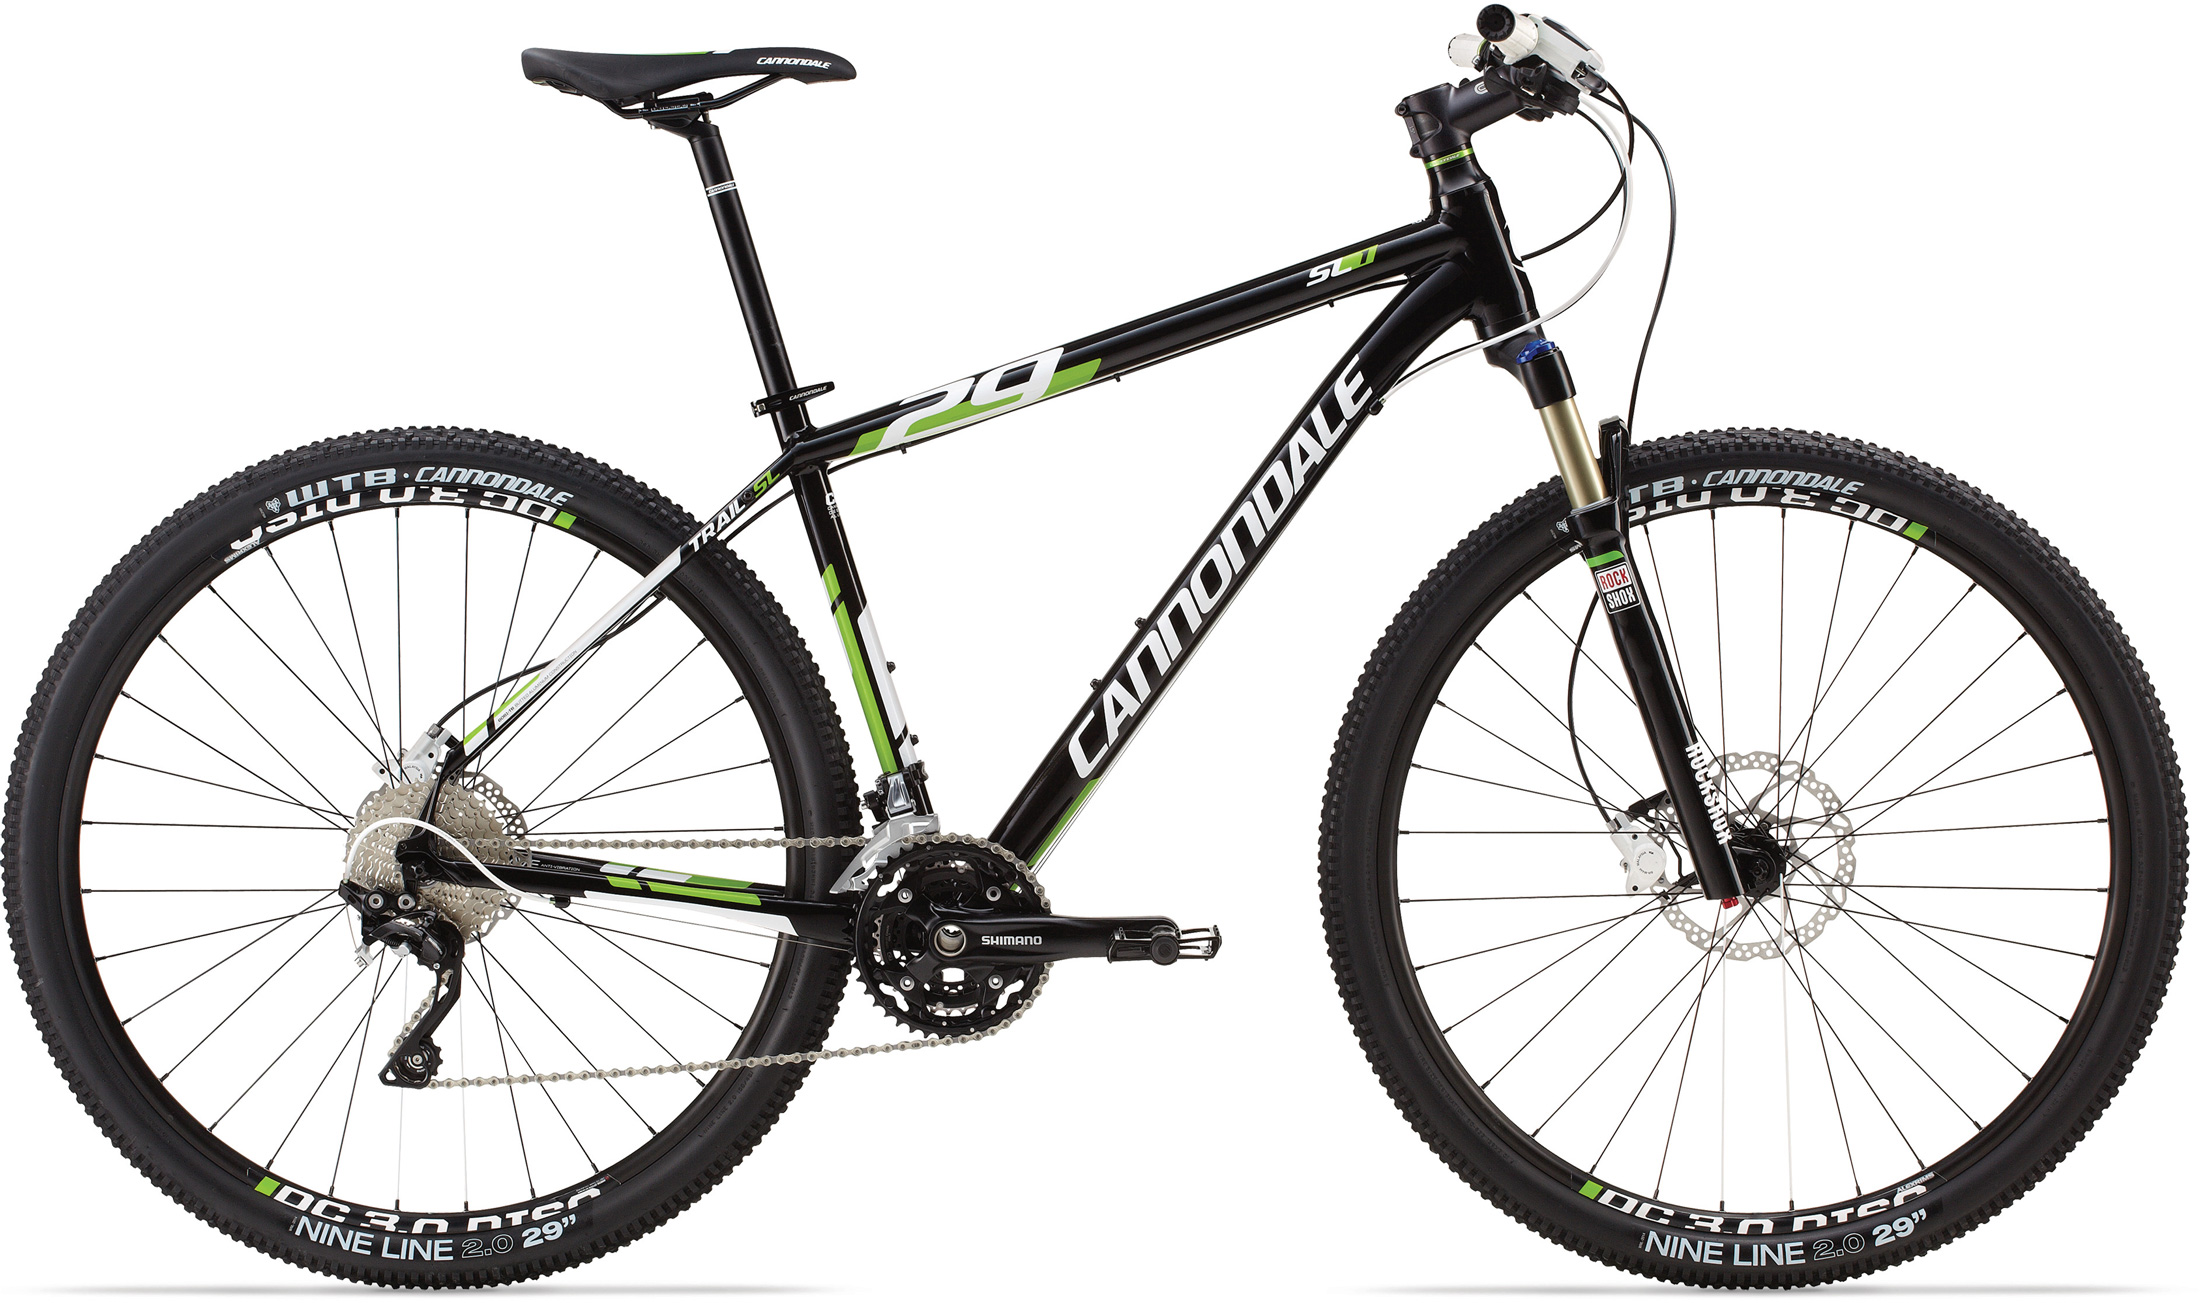 cc0d2fe1341 Cannondale Trail SL 29er 1 - Montclair Bike Shop | Diamond Cycle